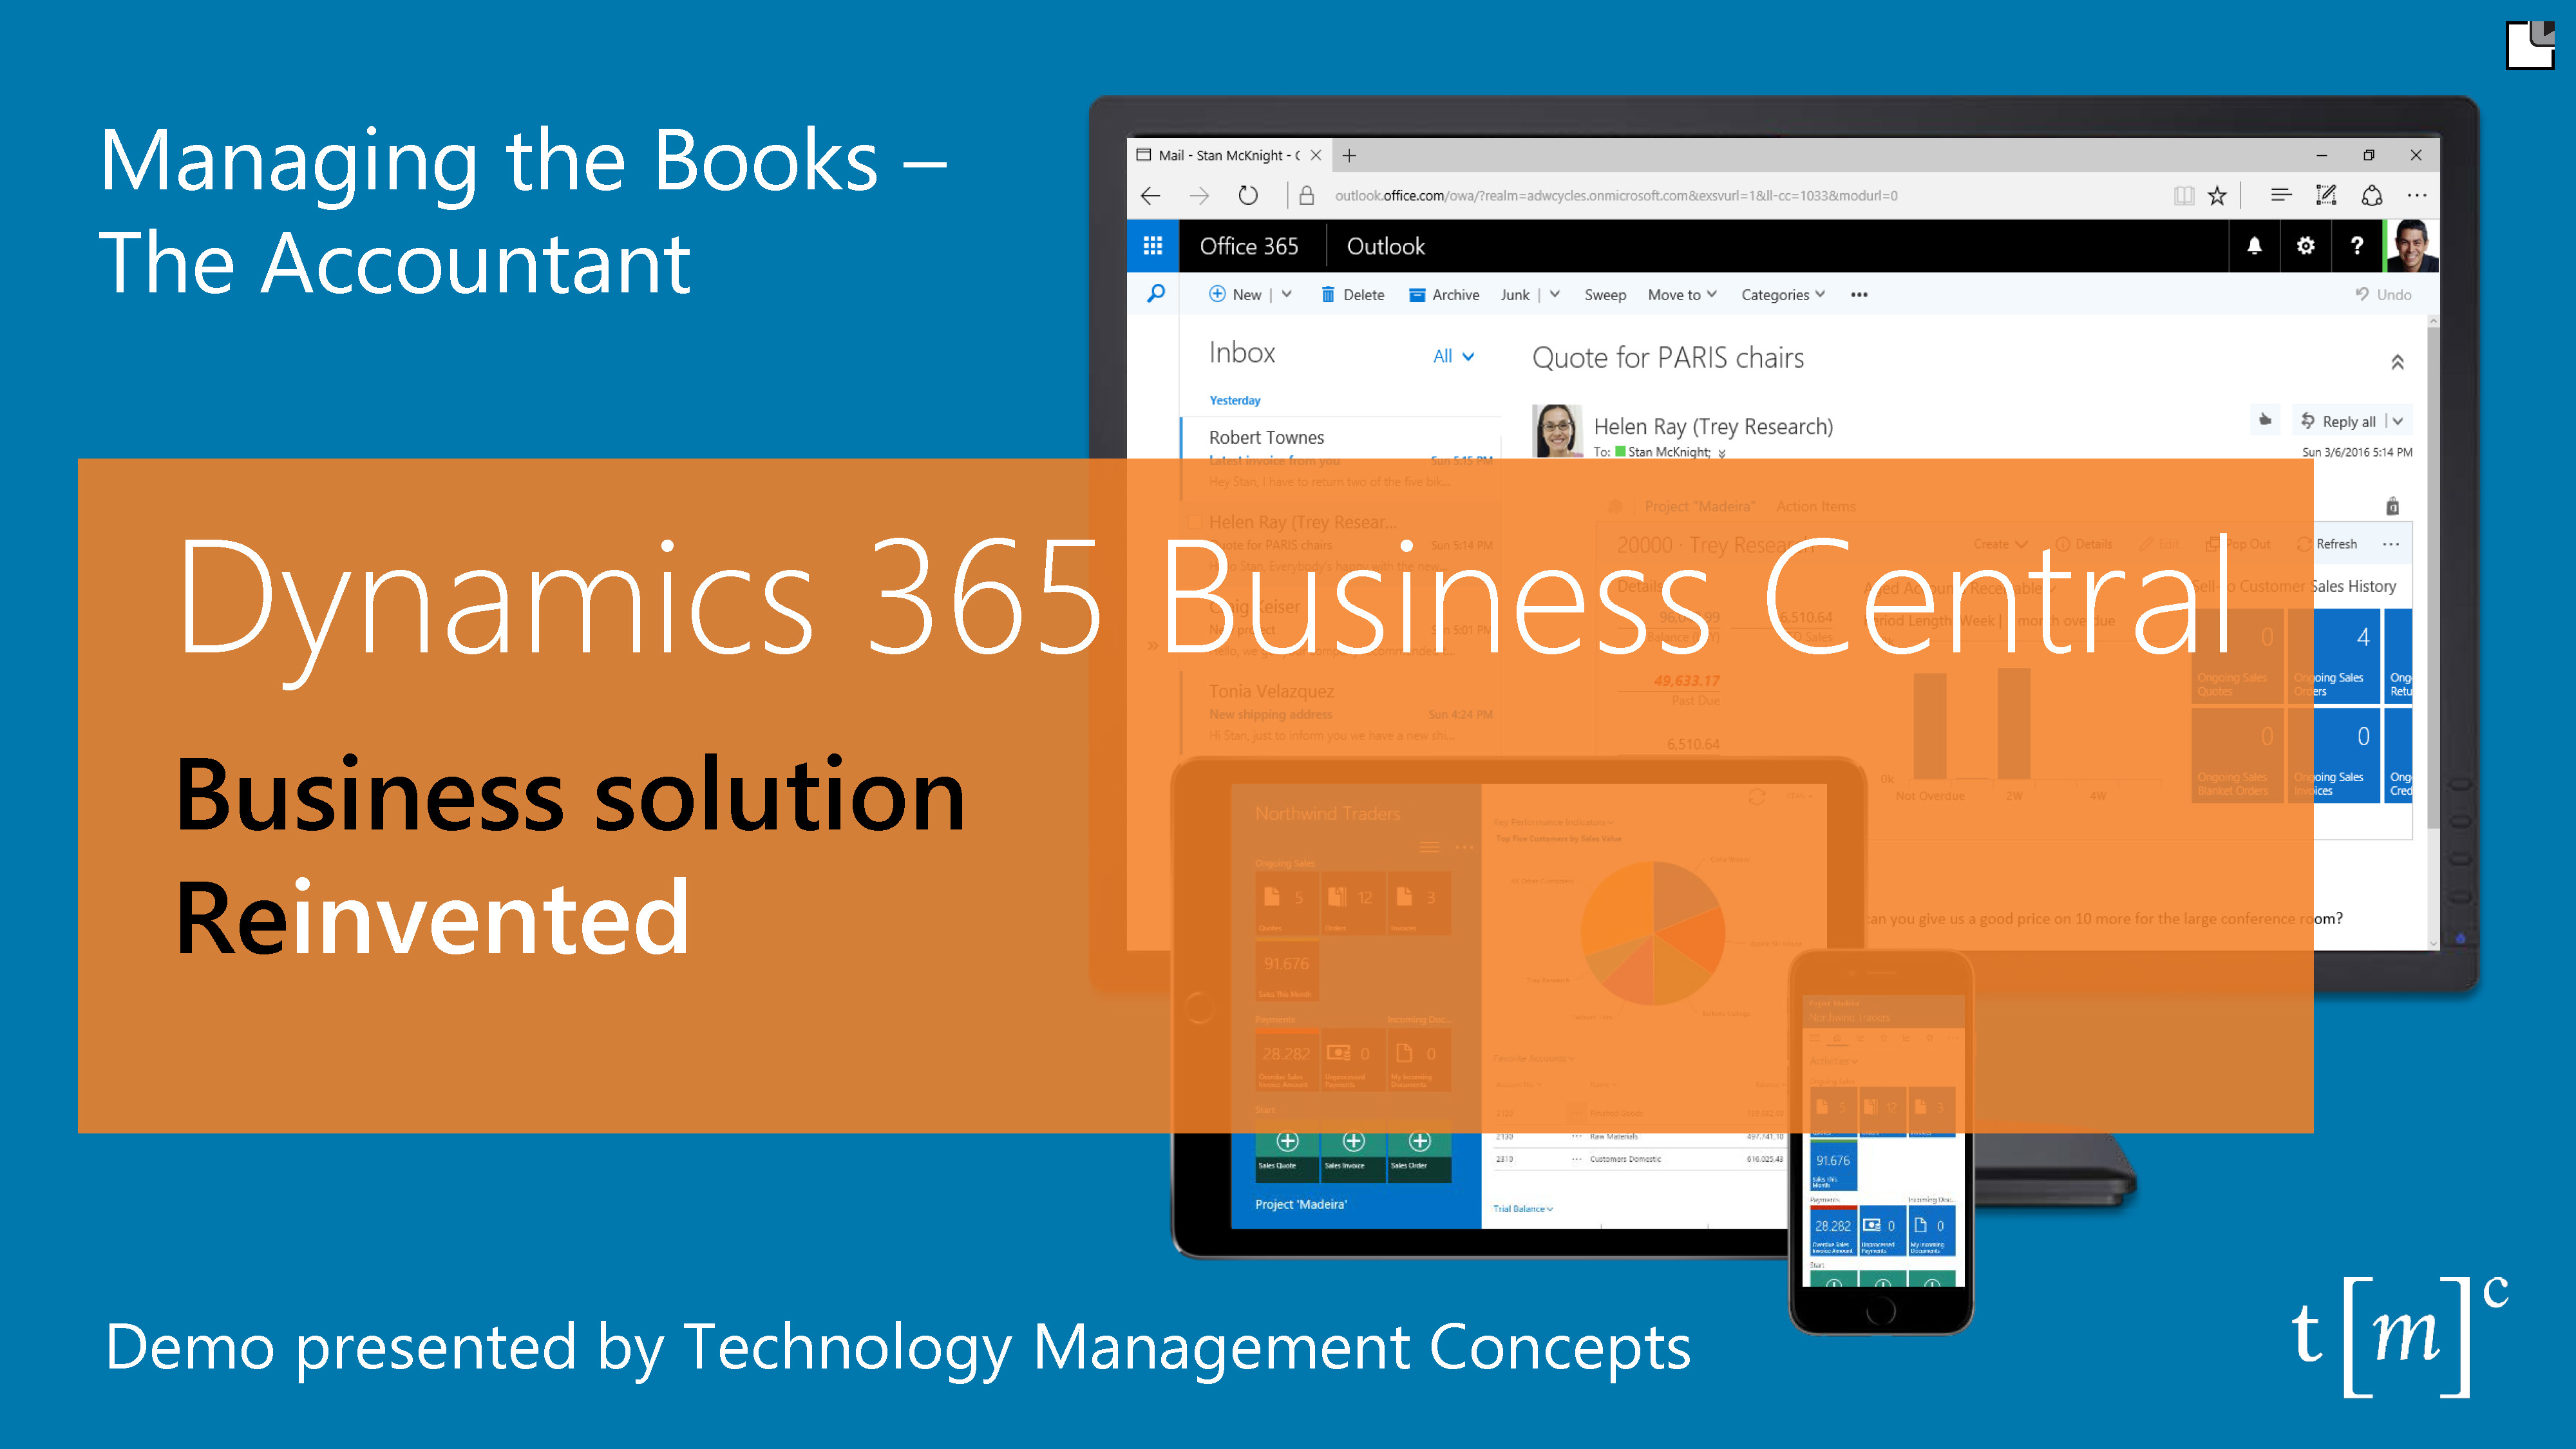 Dynamics 365 Business Central Demo for Accountant